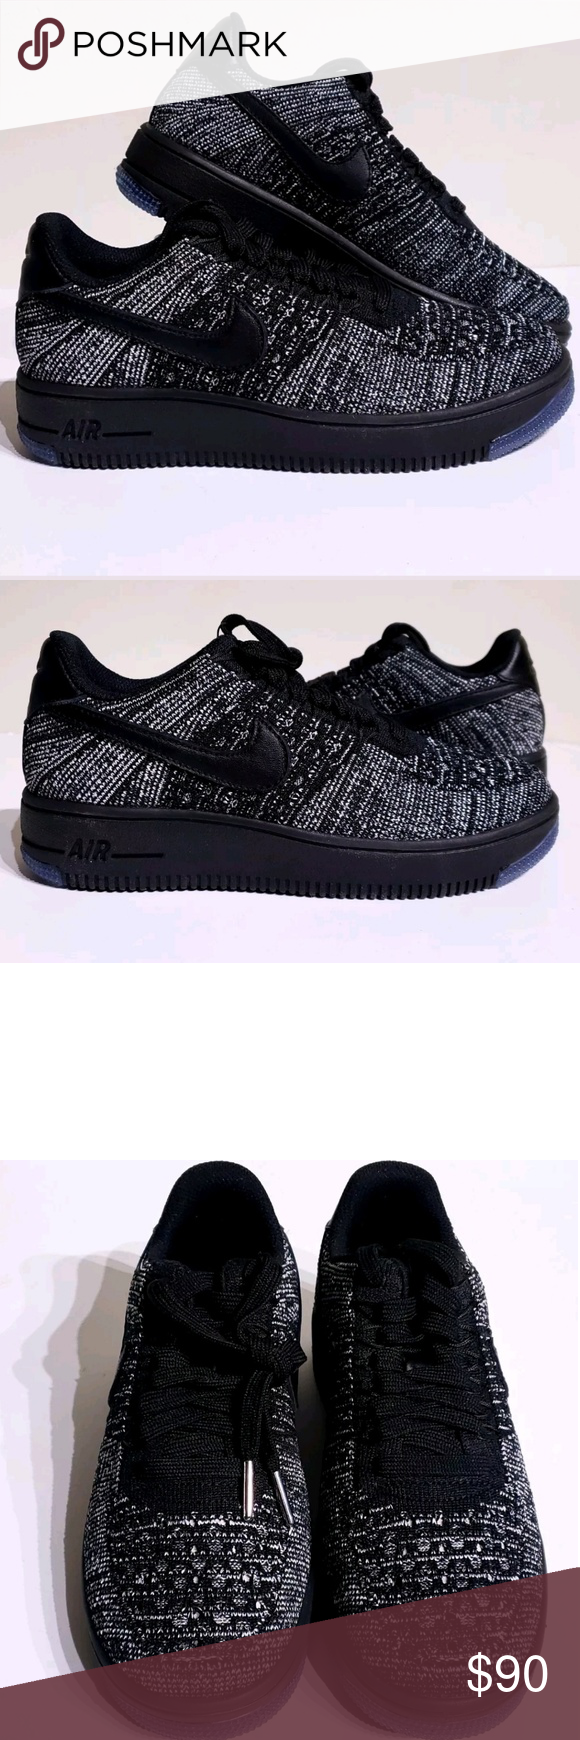 Nike Air Force 1 Low Flyknit Oreos 820256 007 New with Box